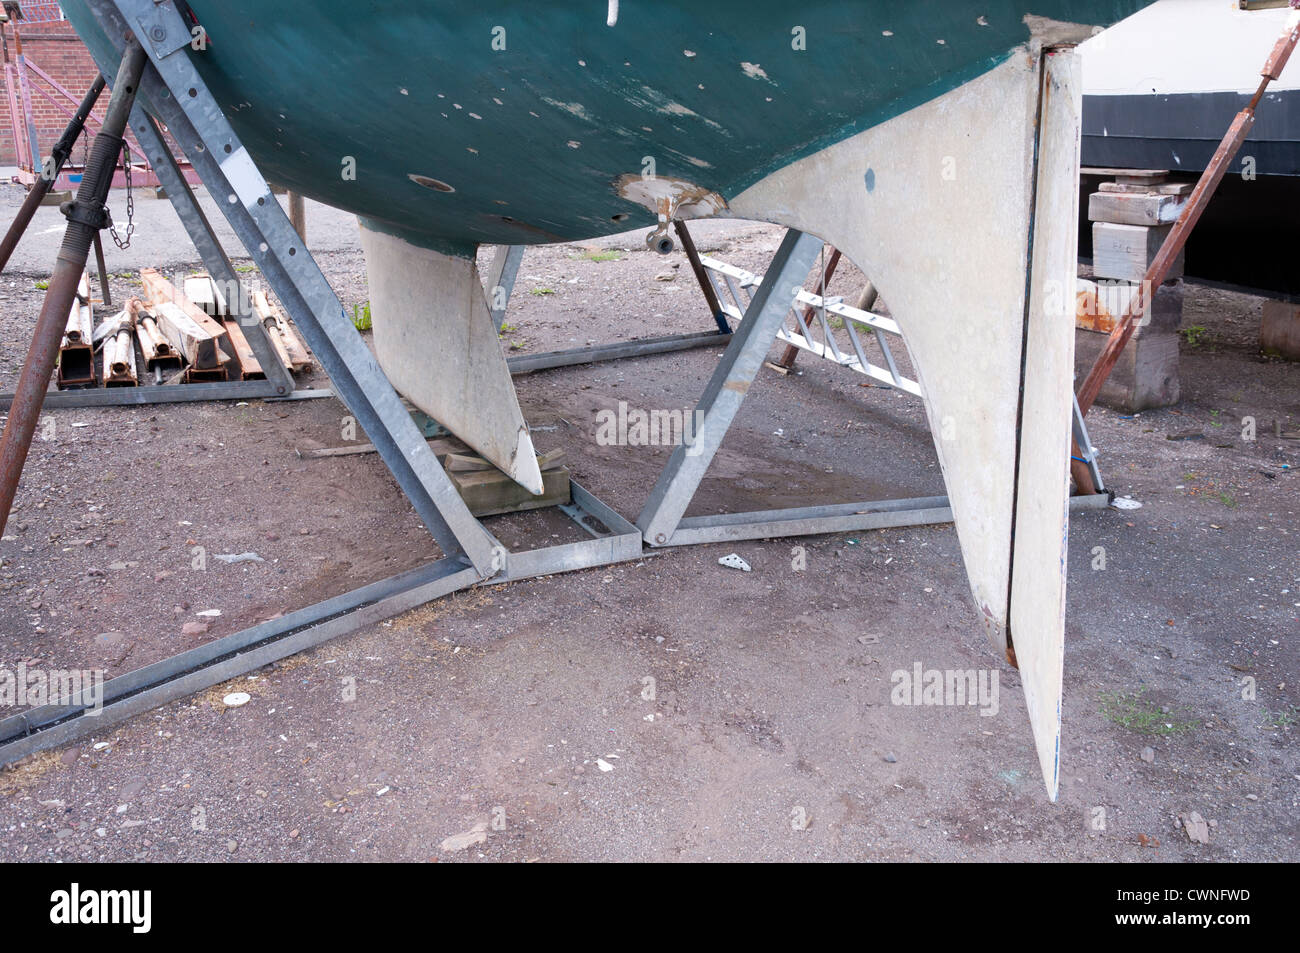 Rudder and Keel visible on a boat in dry dock. - Stock Image